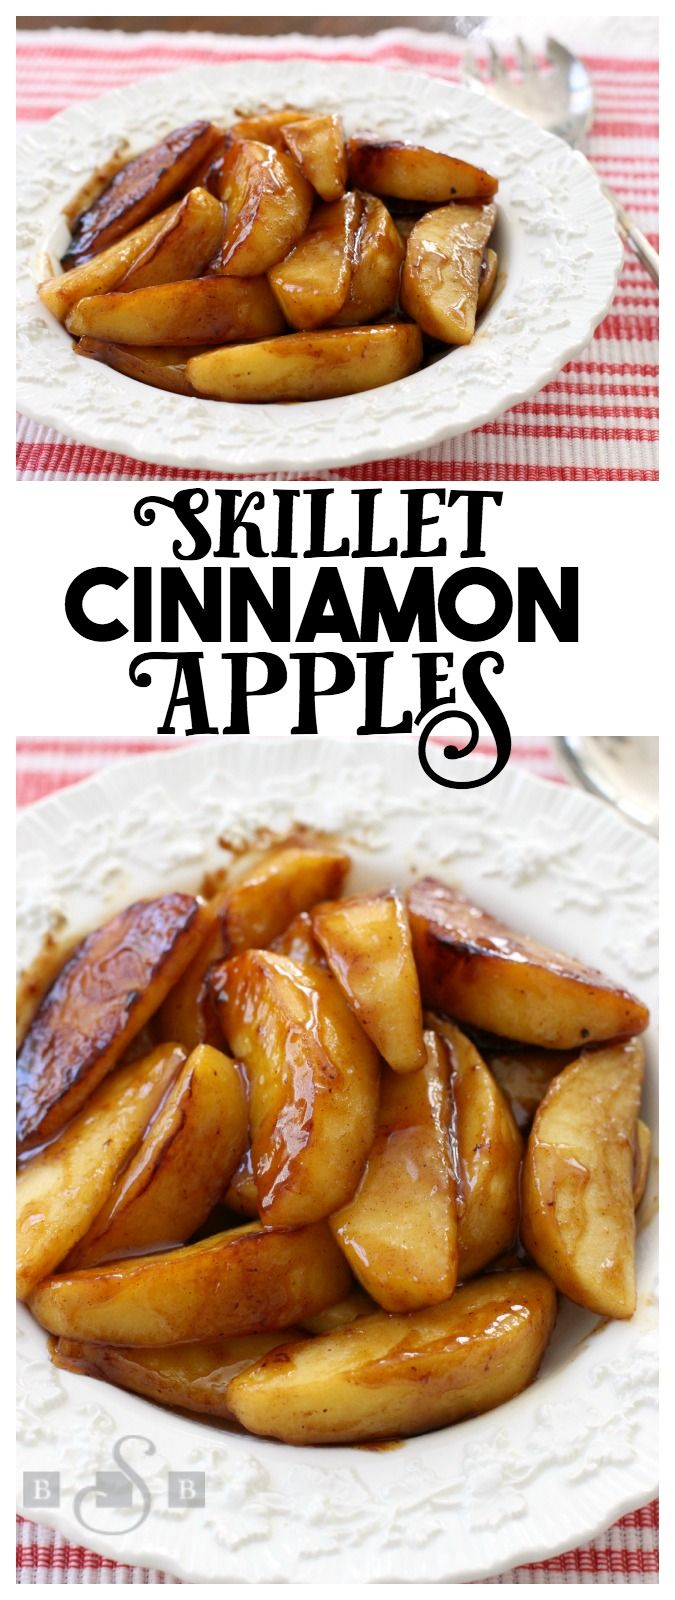 Skillet Cinnamon Apples - Butter With A Side of Bread #applerecipes